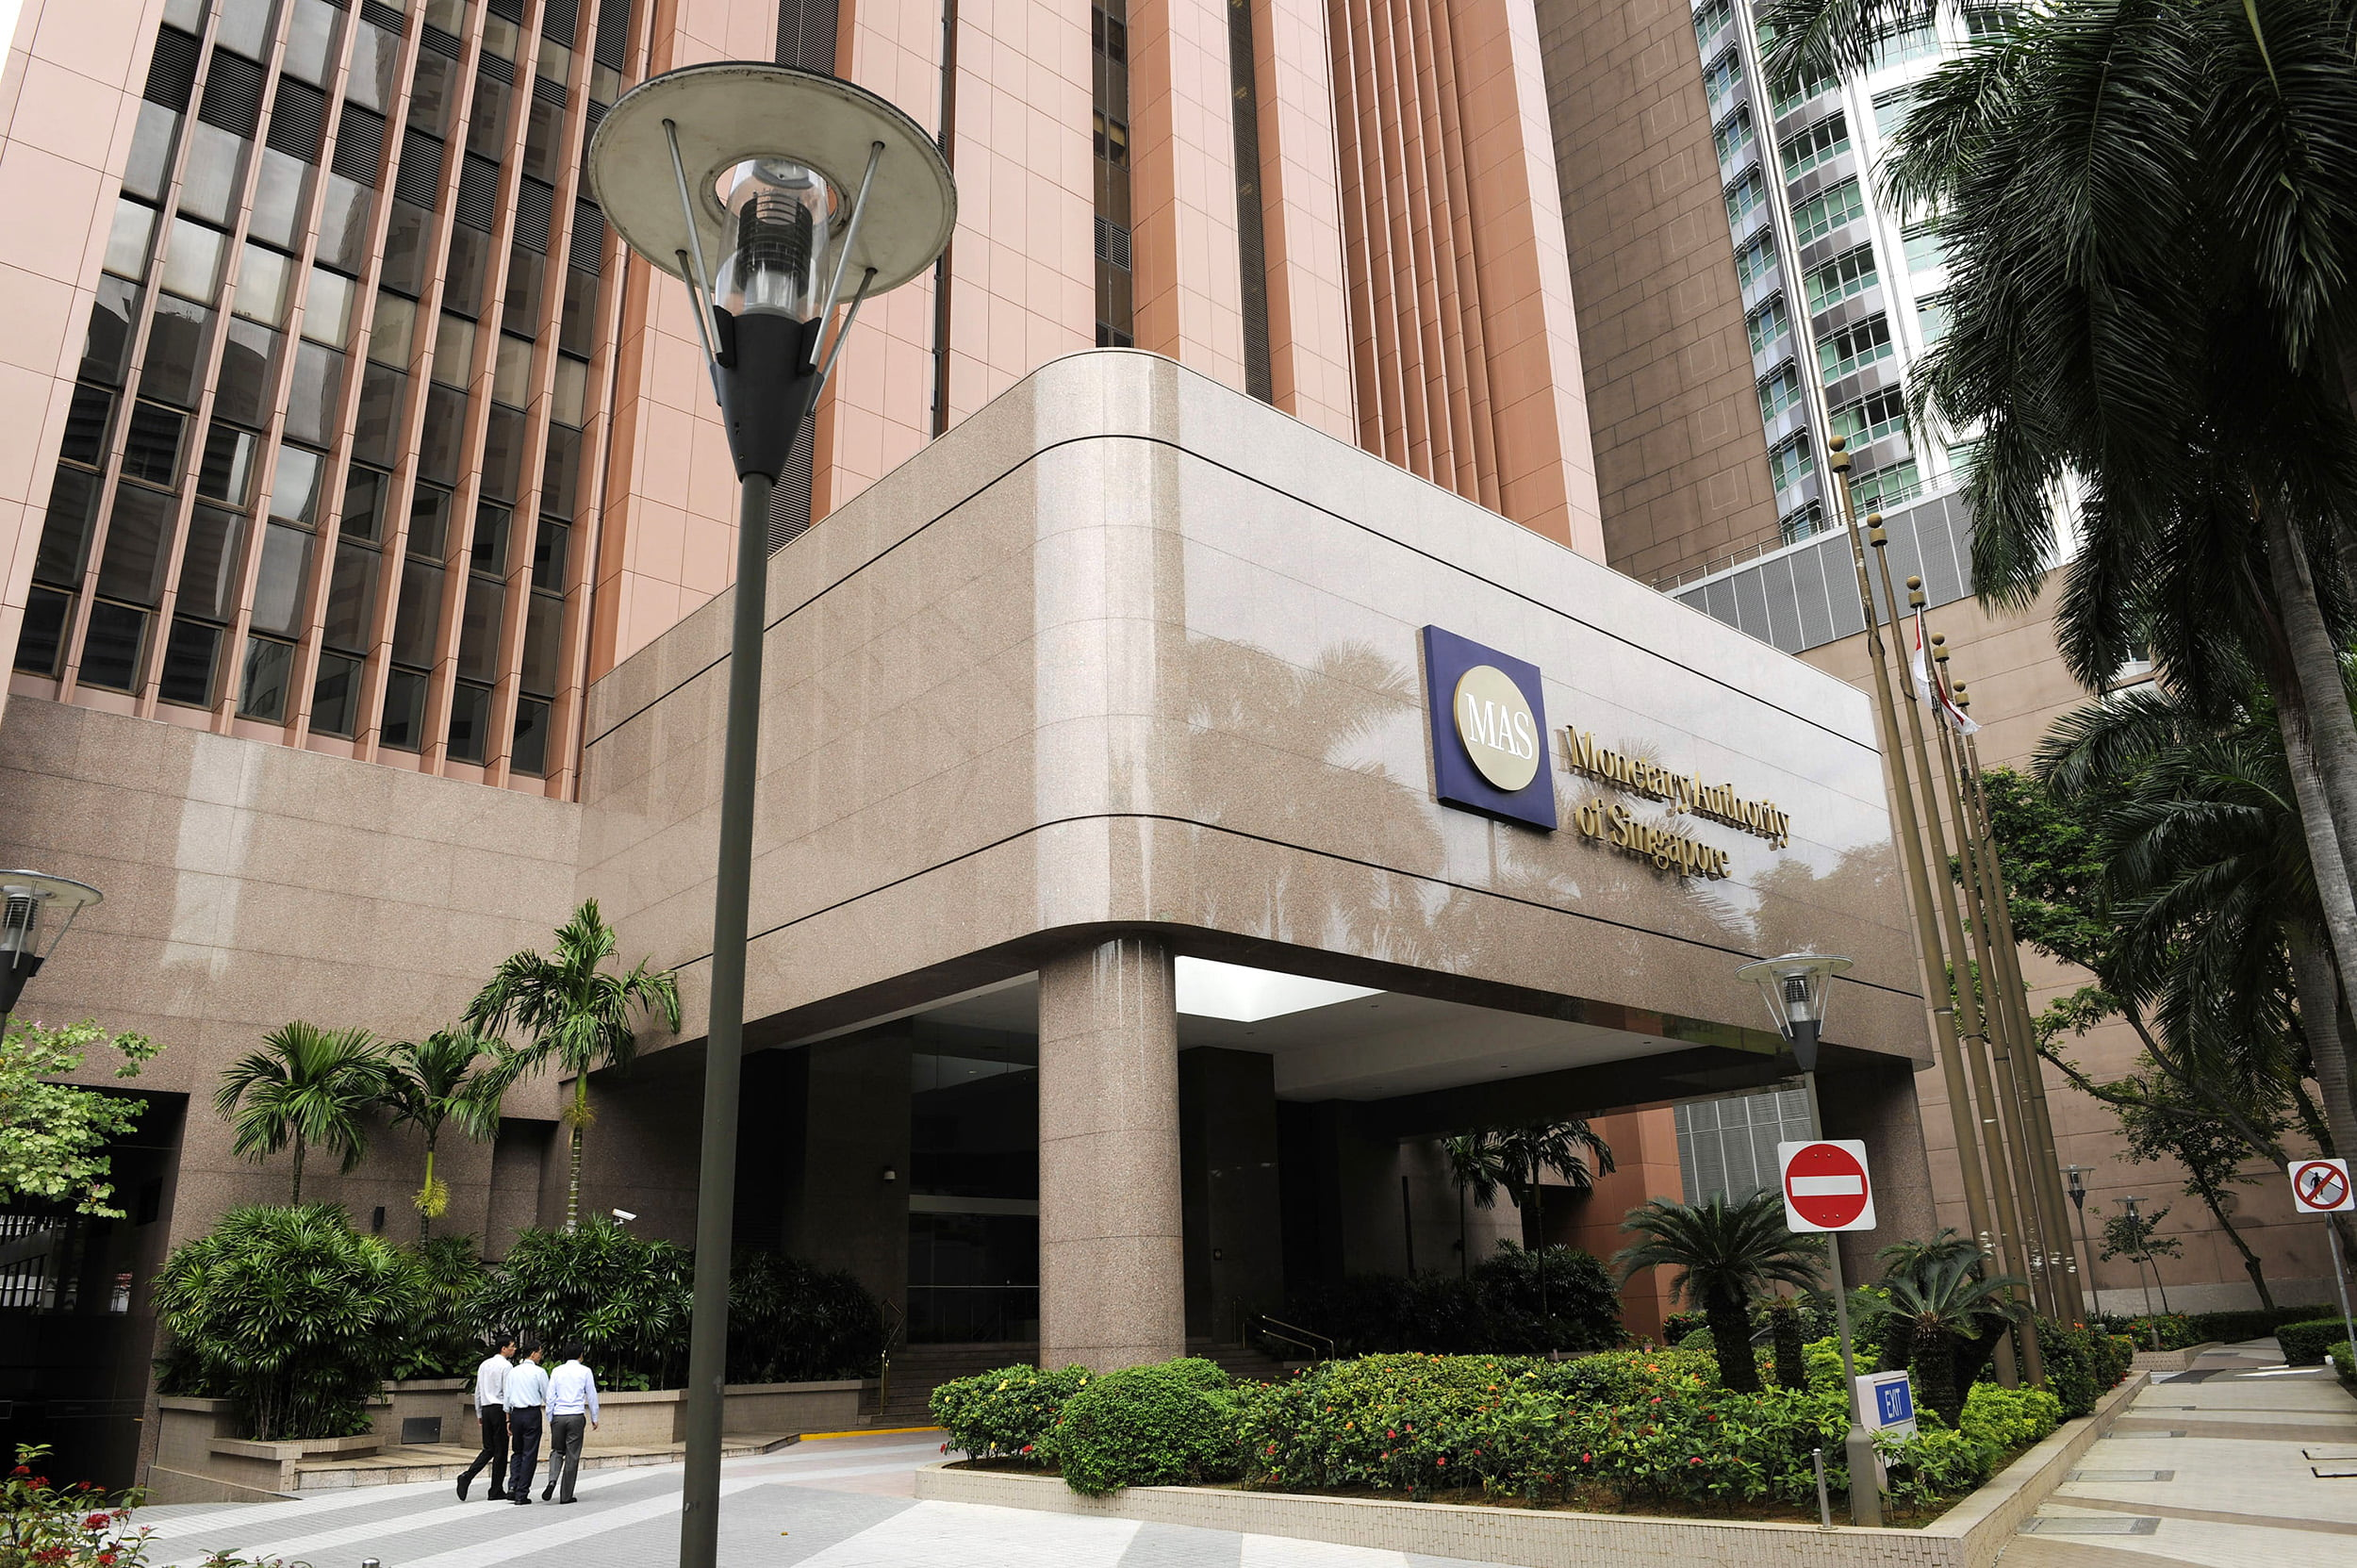 Singapore is strengthening guidelines for the financial services sector